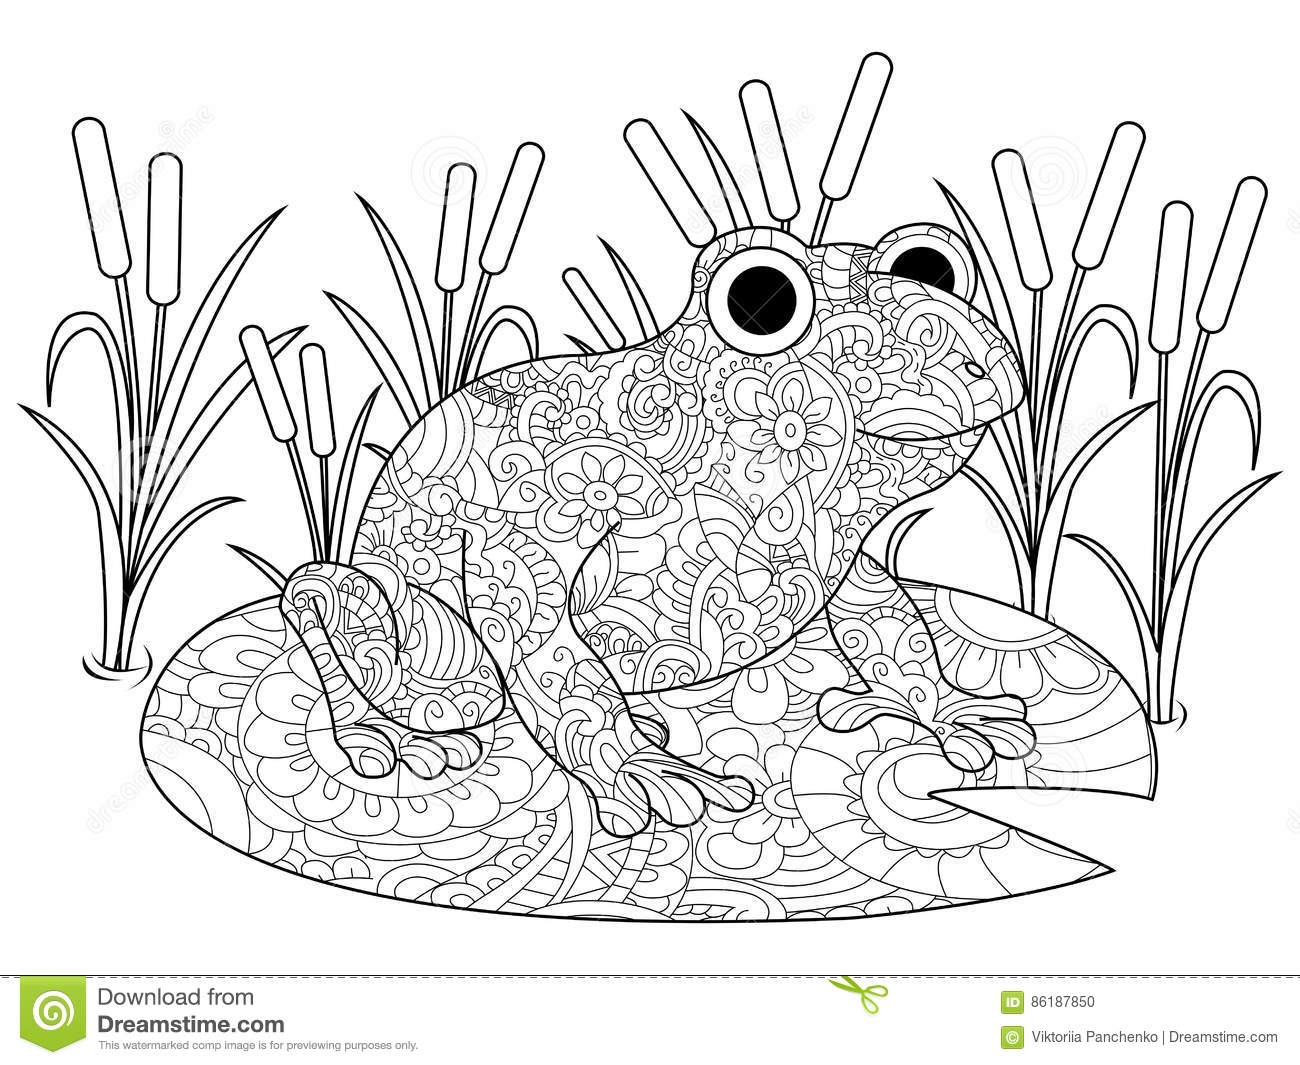 Frog On A Lily In The Swamp Coloring Book For Adults